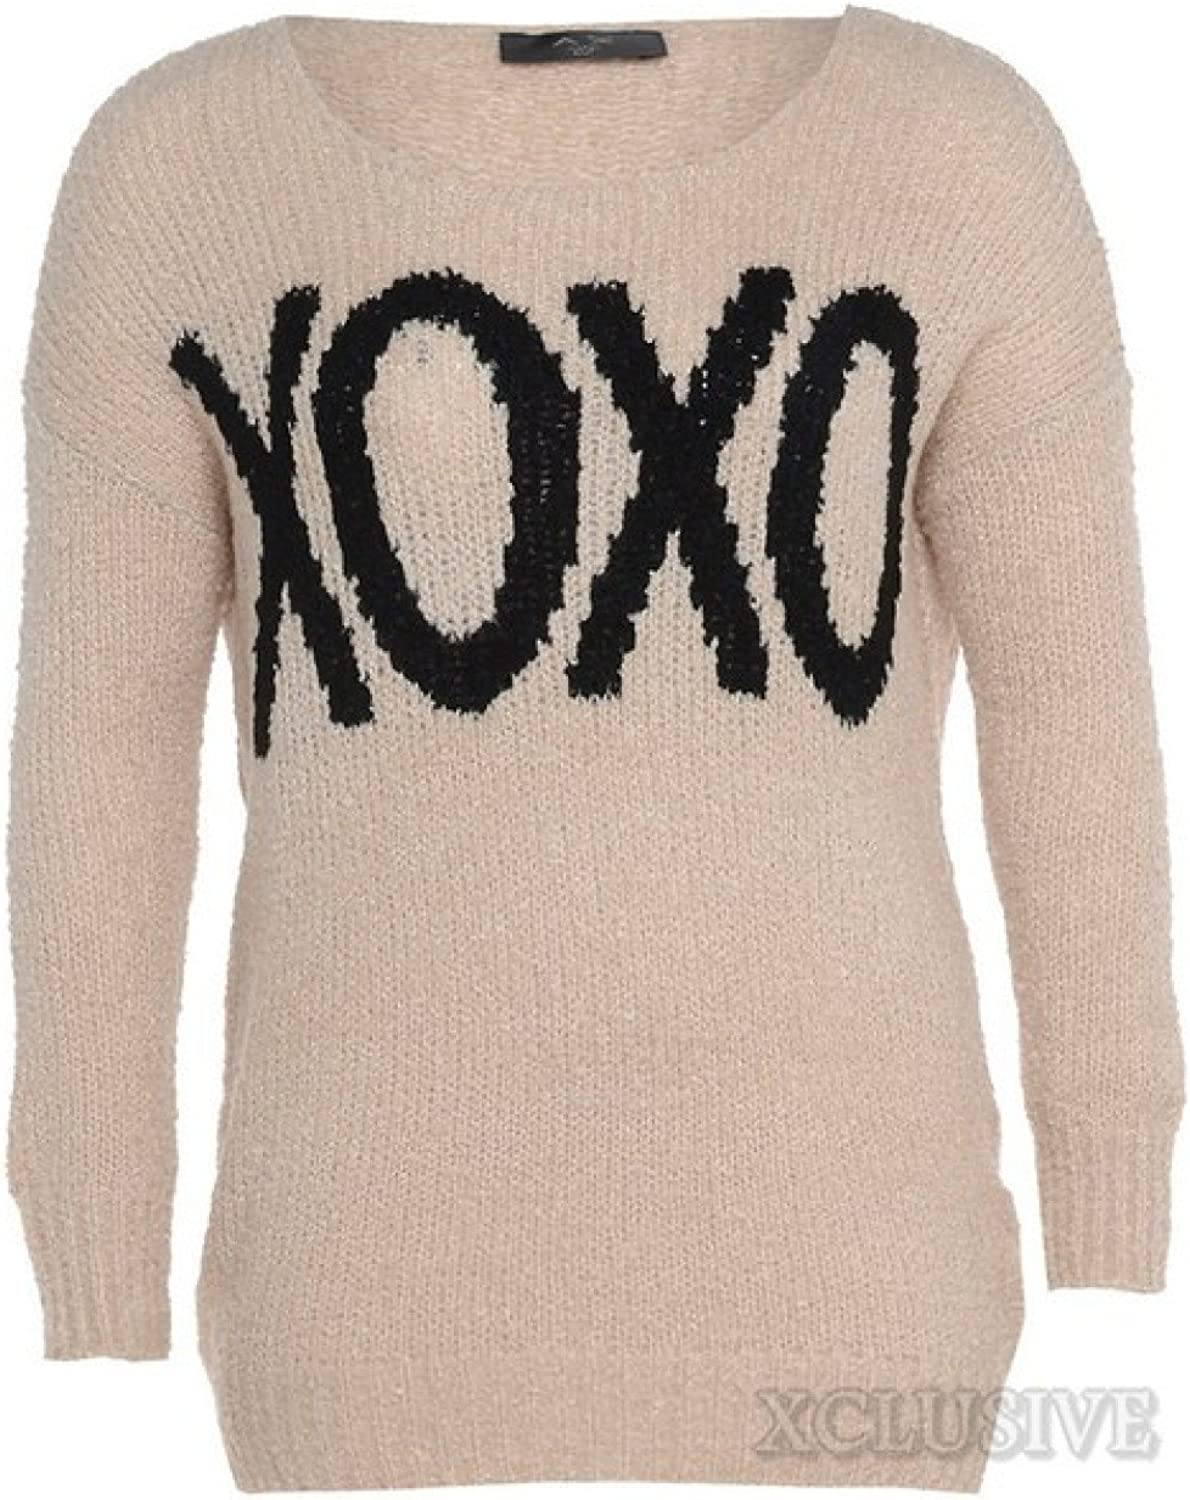 Women's Plus Size Knit Knitted Winter Jumper Top